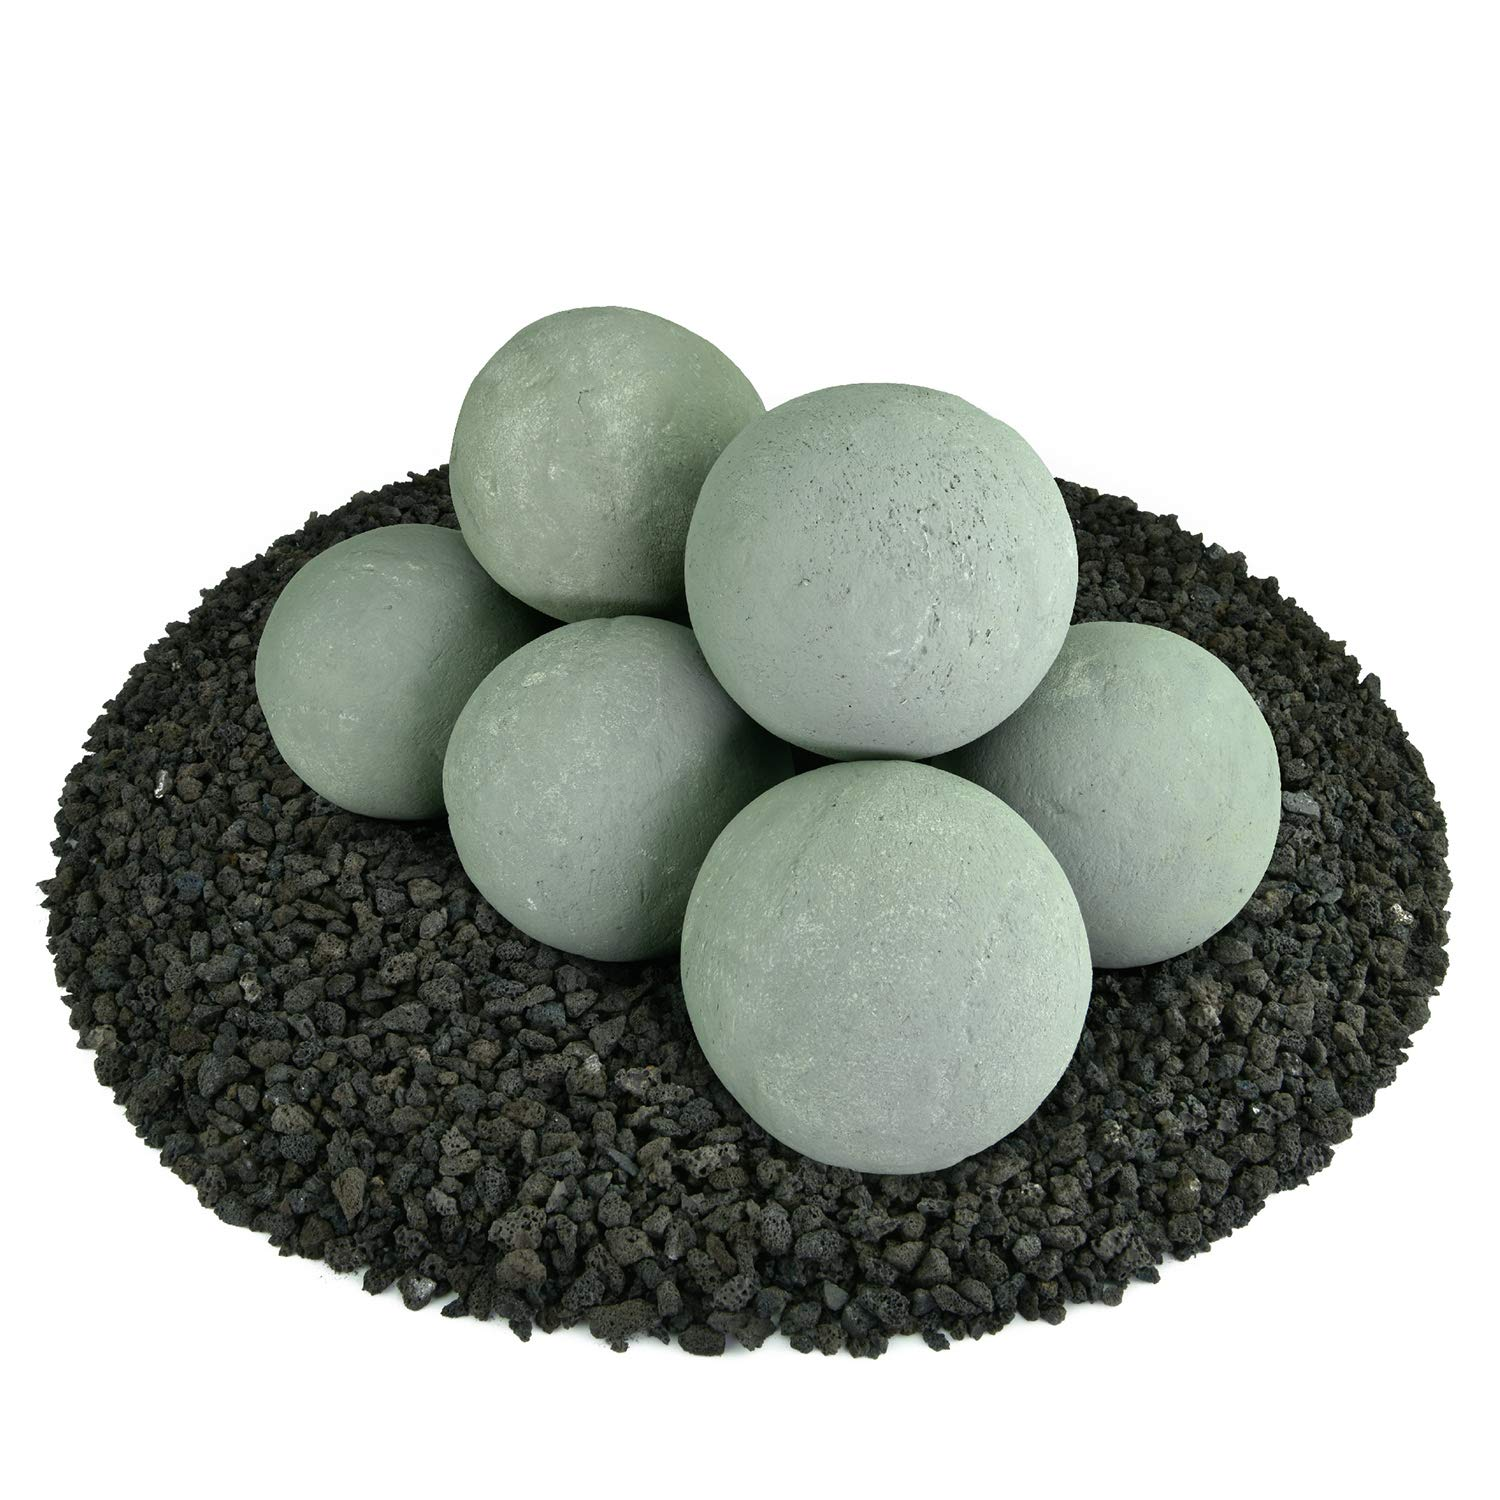 Ceramic Fire Balls | Set of 8 | Modern Accessory for Indoor and Outdoor Fire Pits or Fireplaces – Brushed Concrete Look | Pewter Gray, 5 Inch